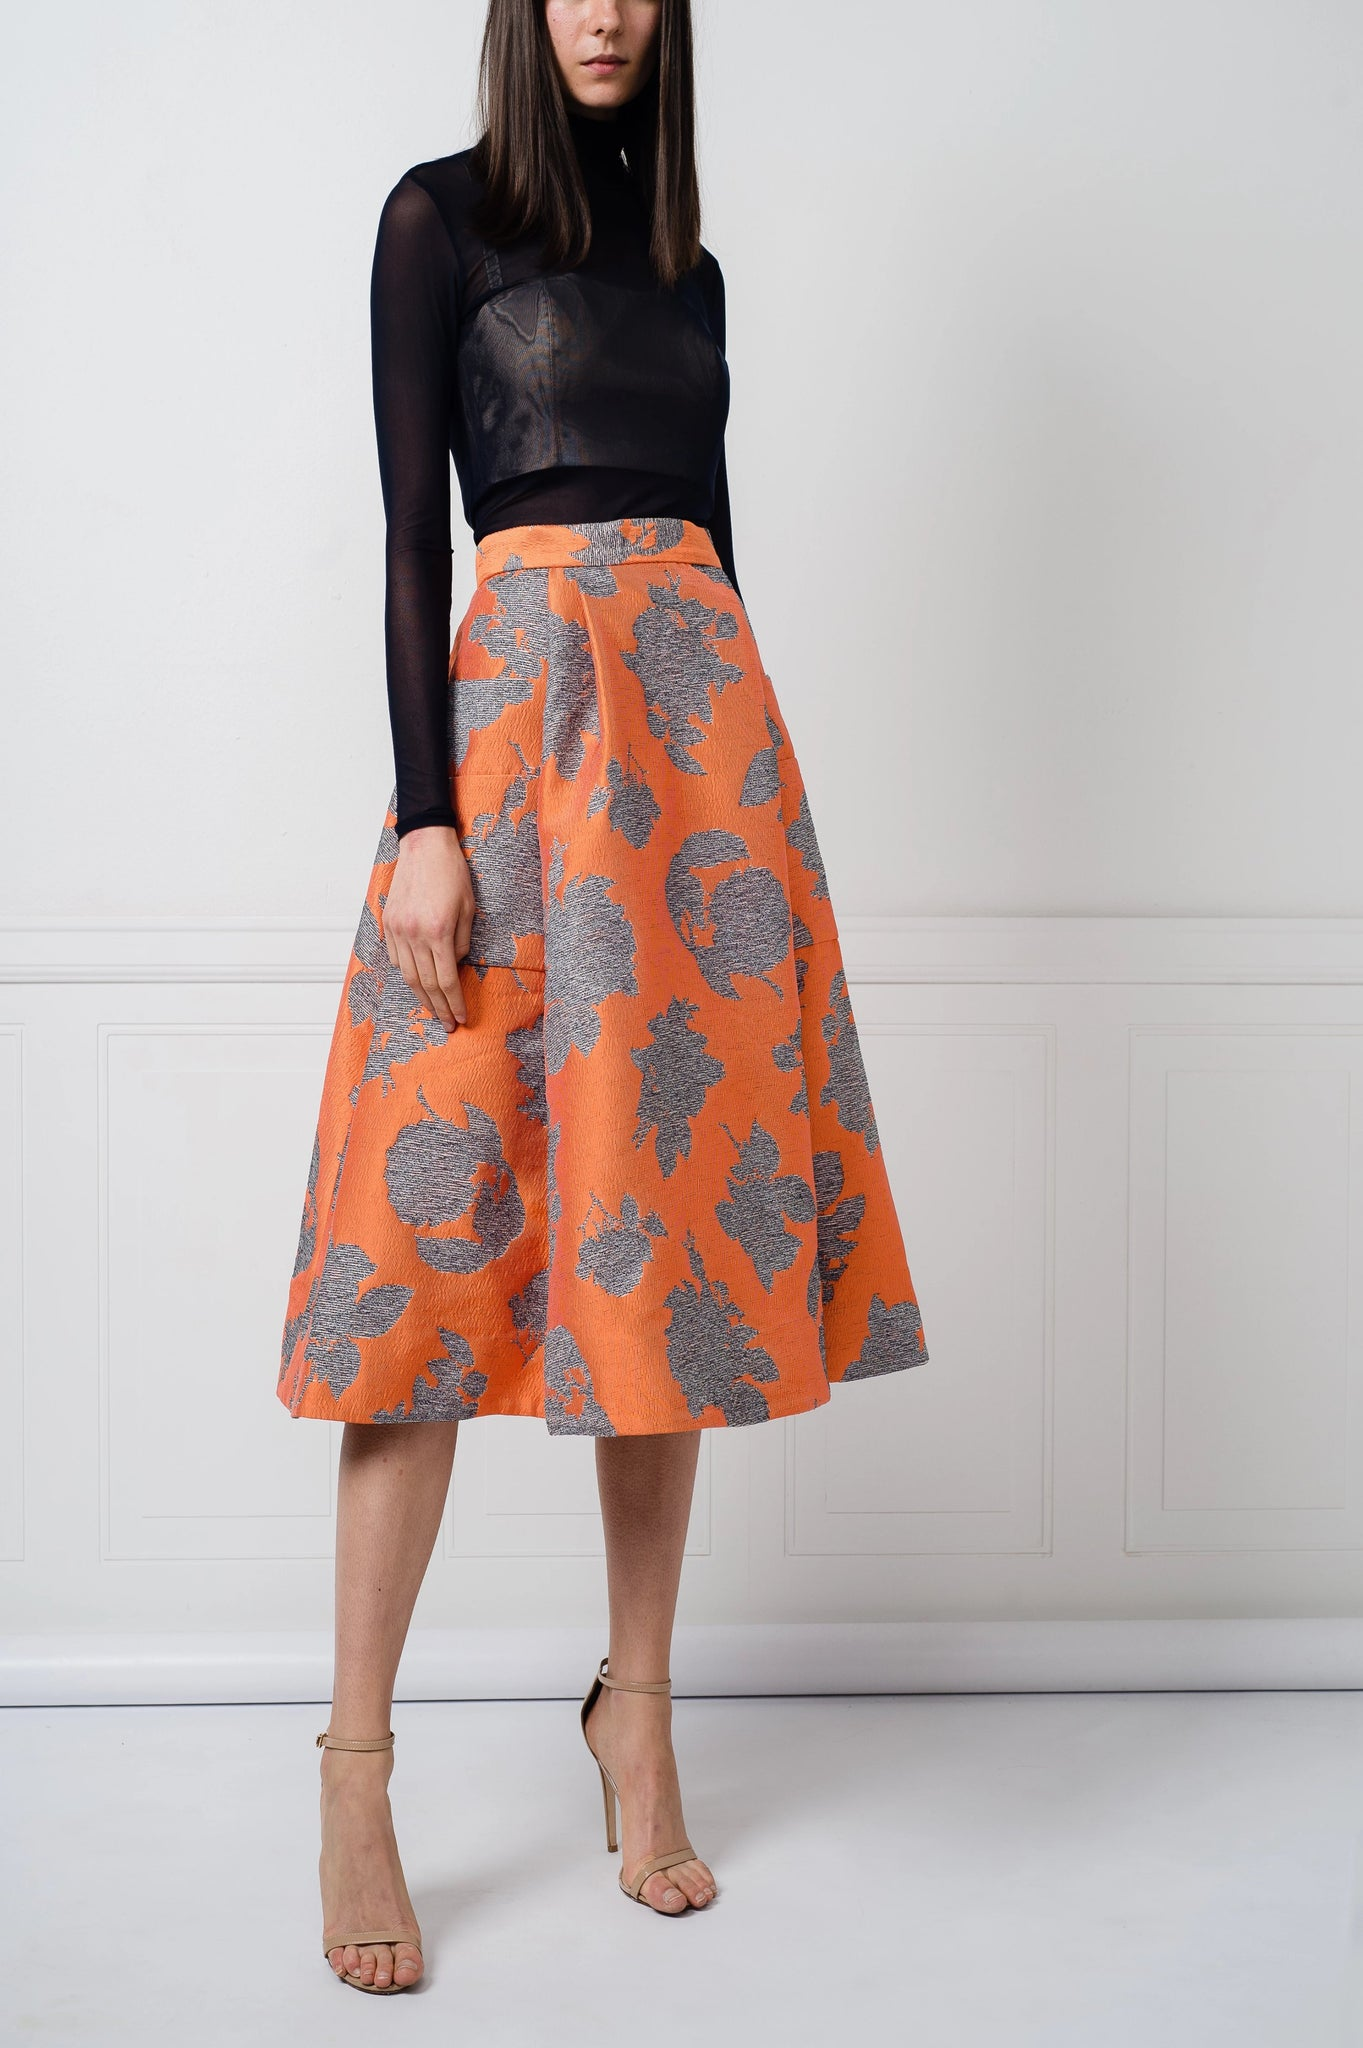 SALE | Cleo Skirt in Orange Floral